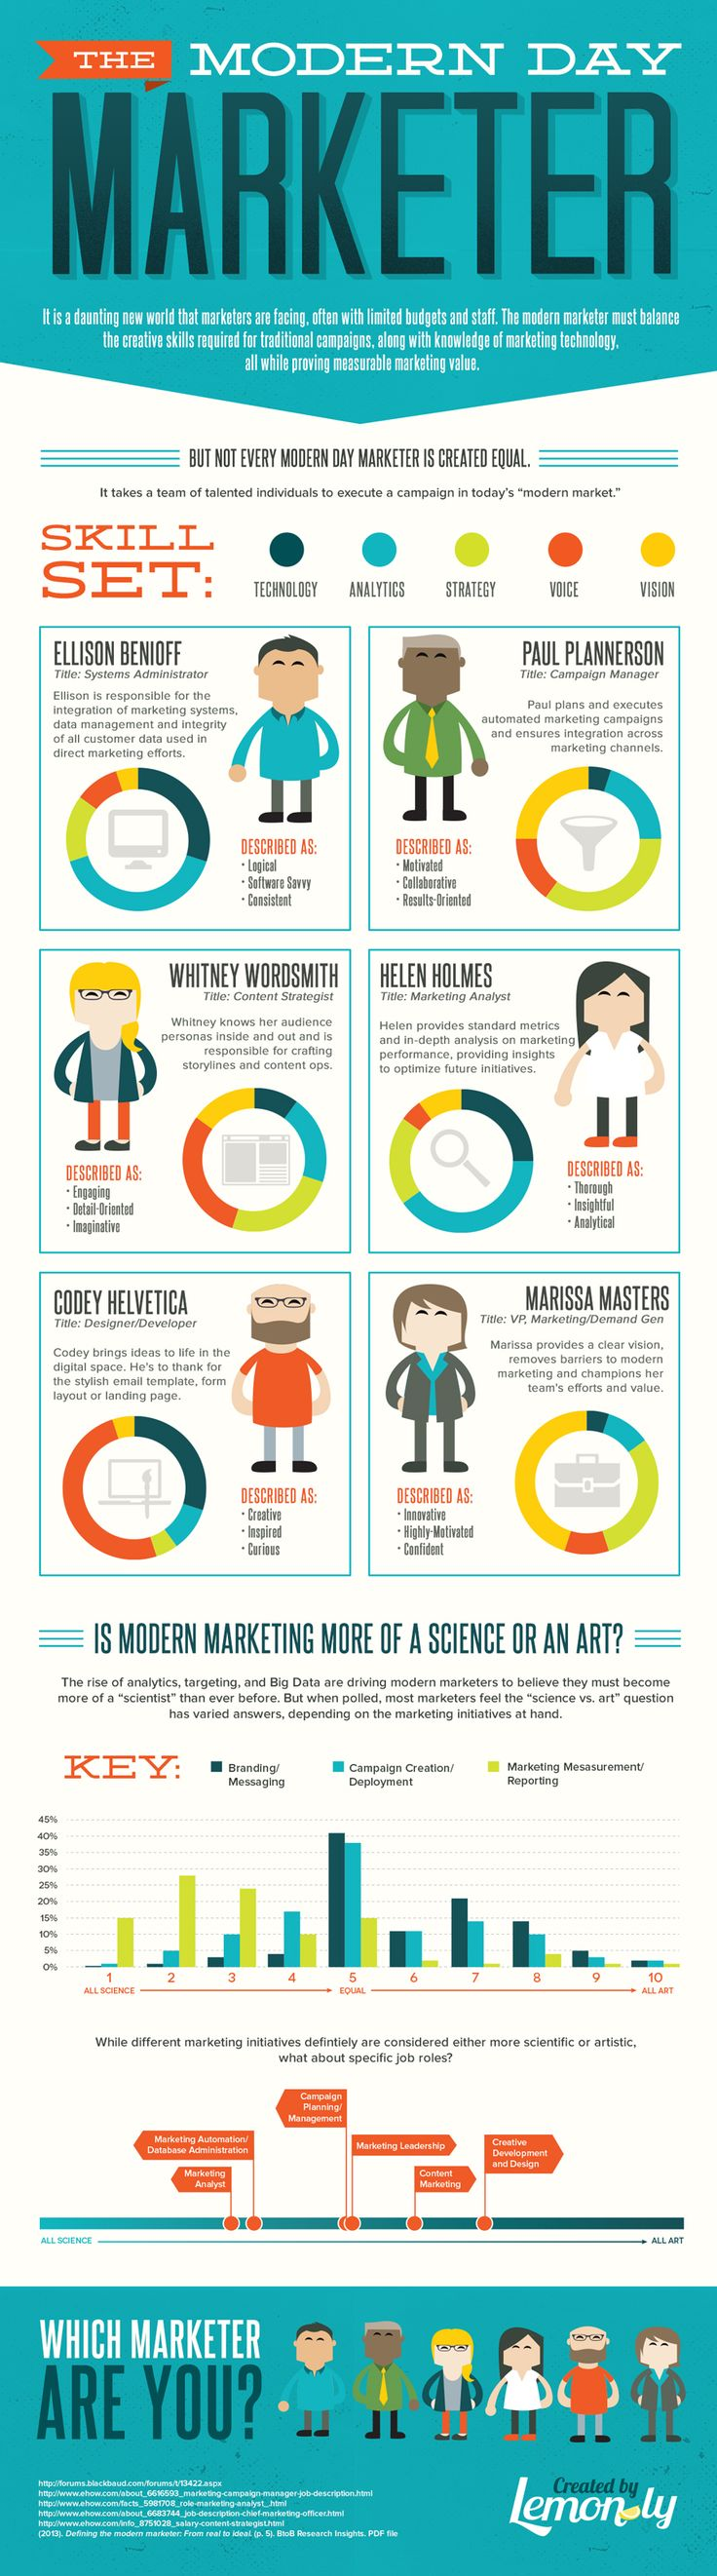 DIGITAL MARKETING - The Modern Day Marketer #Infographic #Marketing #Marketer.